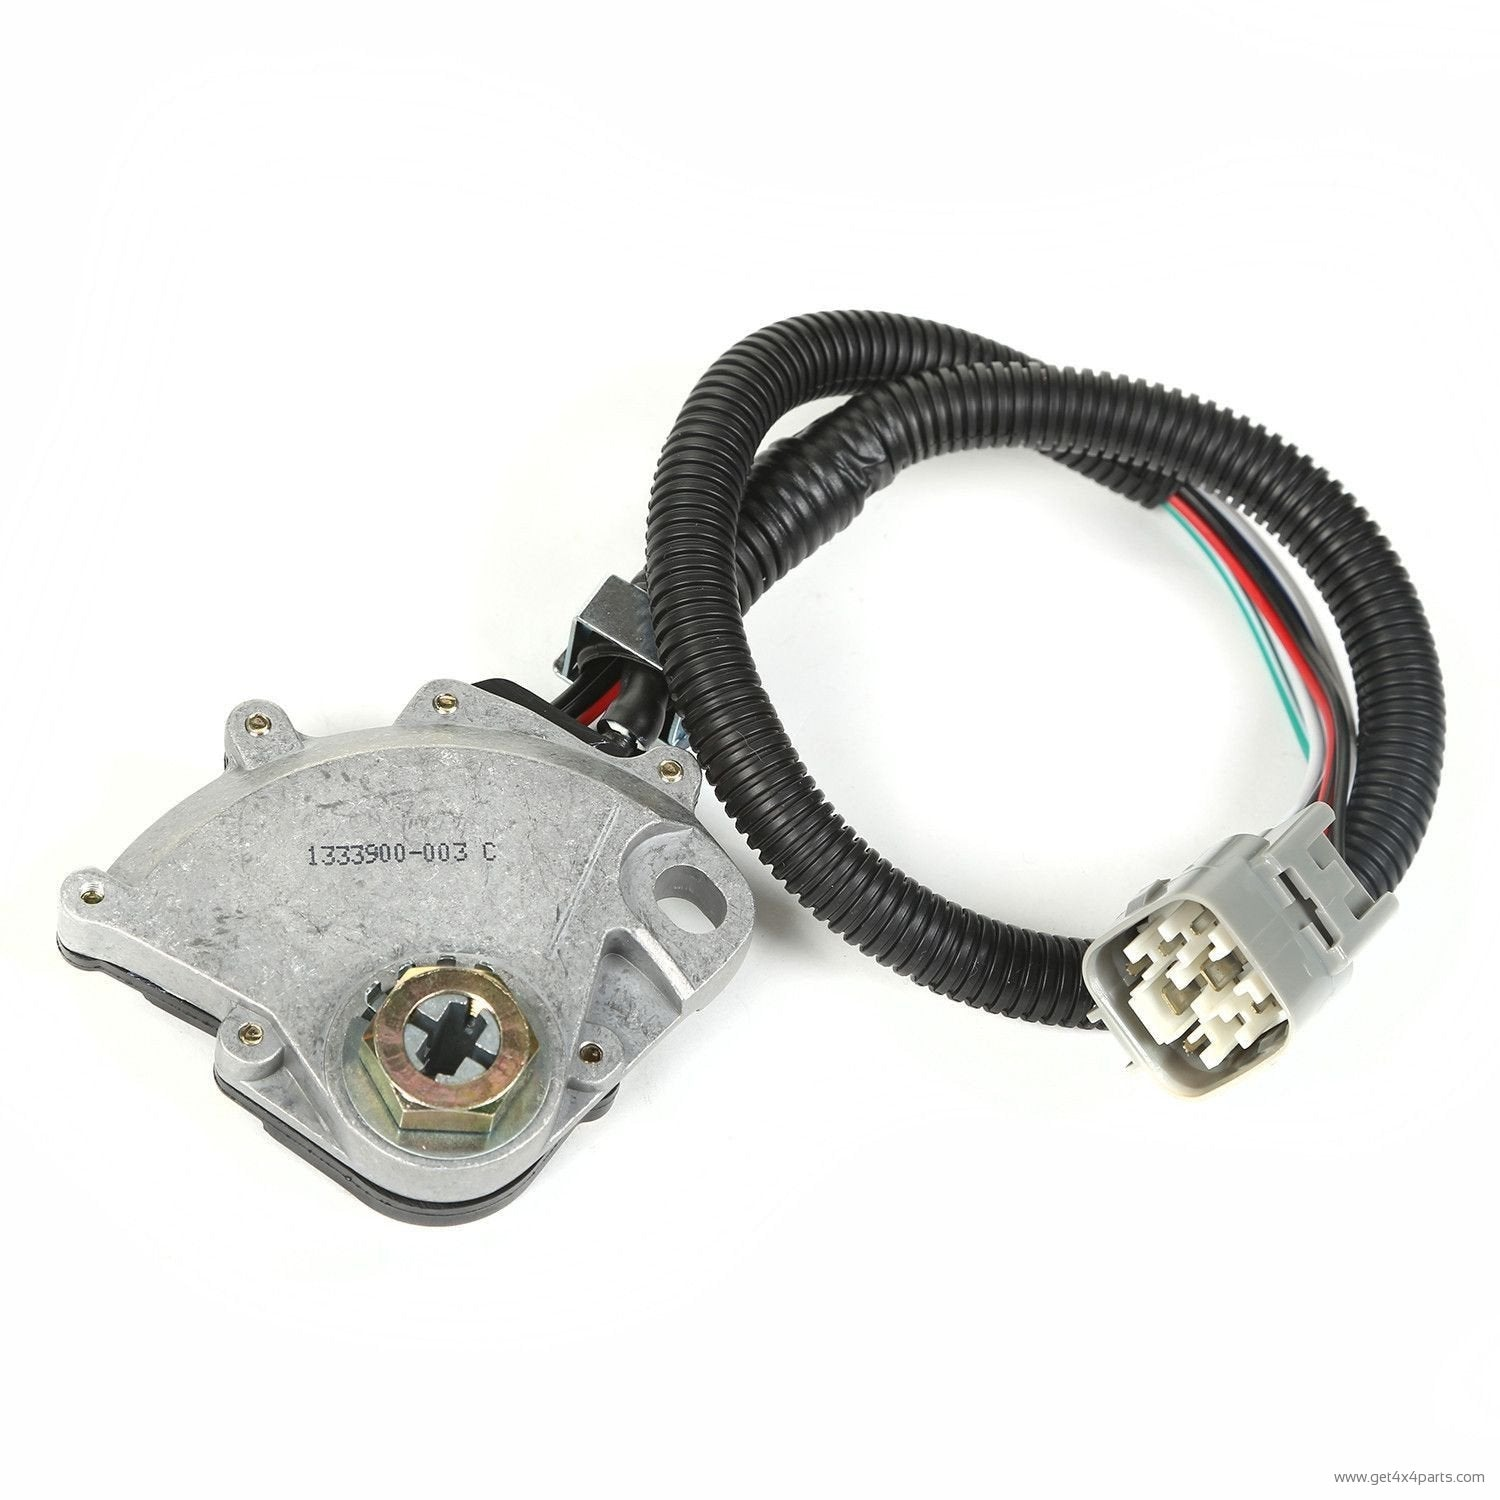 neutral safety switch aw4 97 01 jeep cherokee xj neutral safety switch aw4 97 01 jeep cherokee?v\\\=1503517059 diagrams 8381024 jeep cj7 wiper wiring diagram wiper switch Painless Wiring and Chassis Harness at panicattacktreatment.co